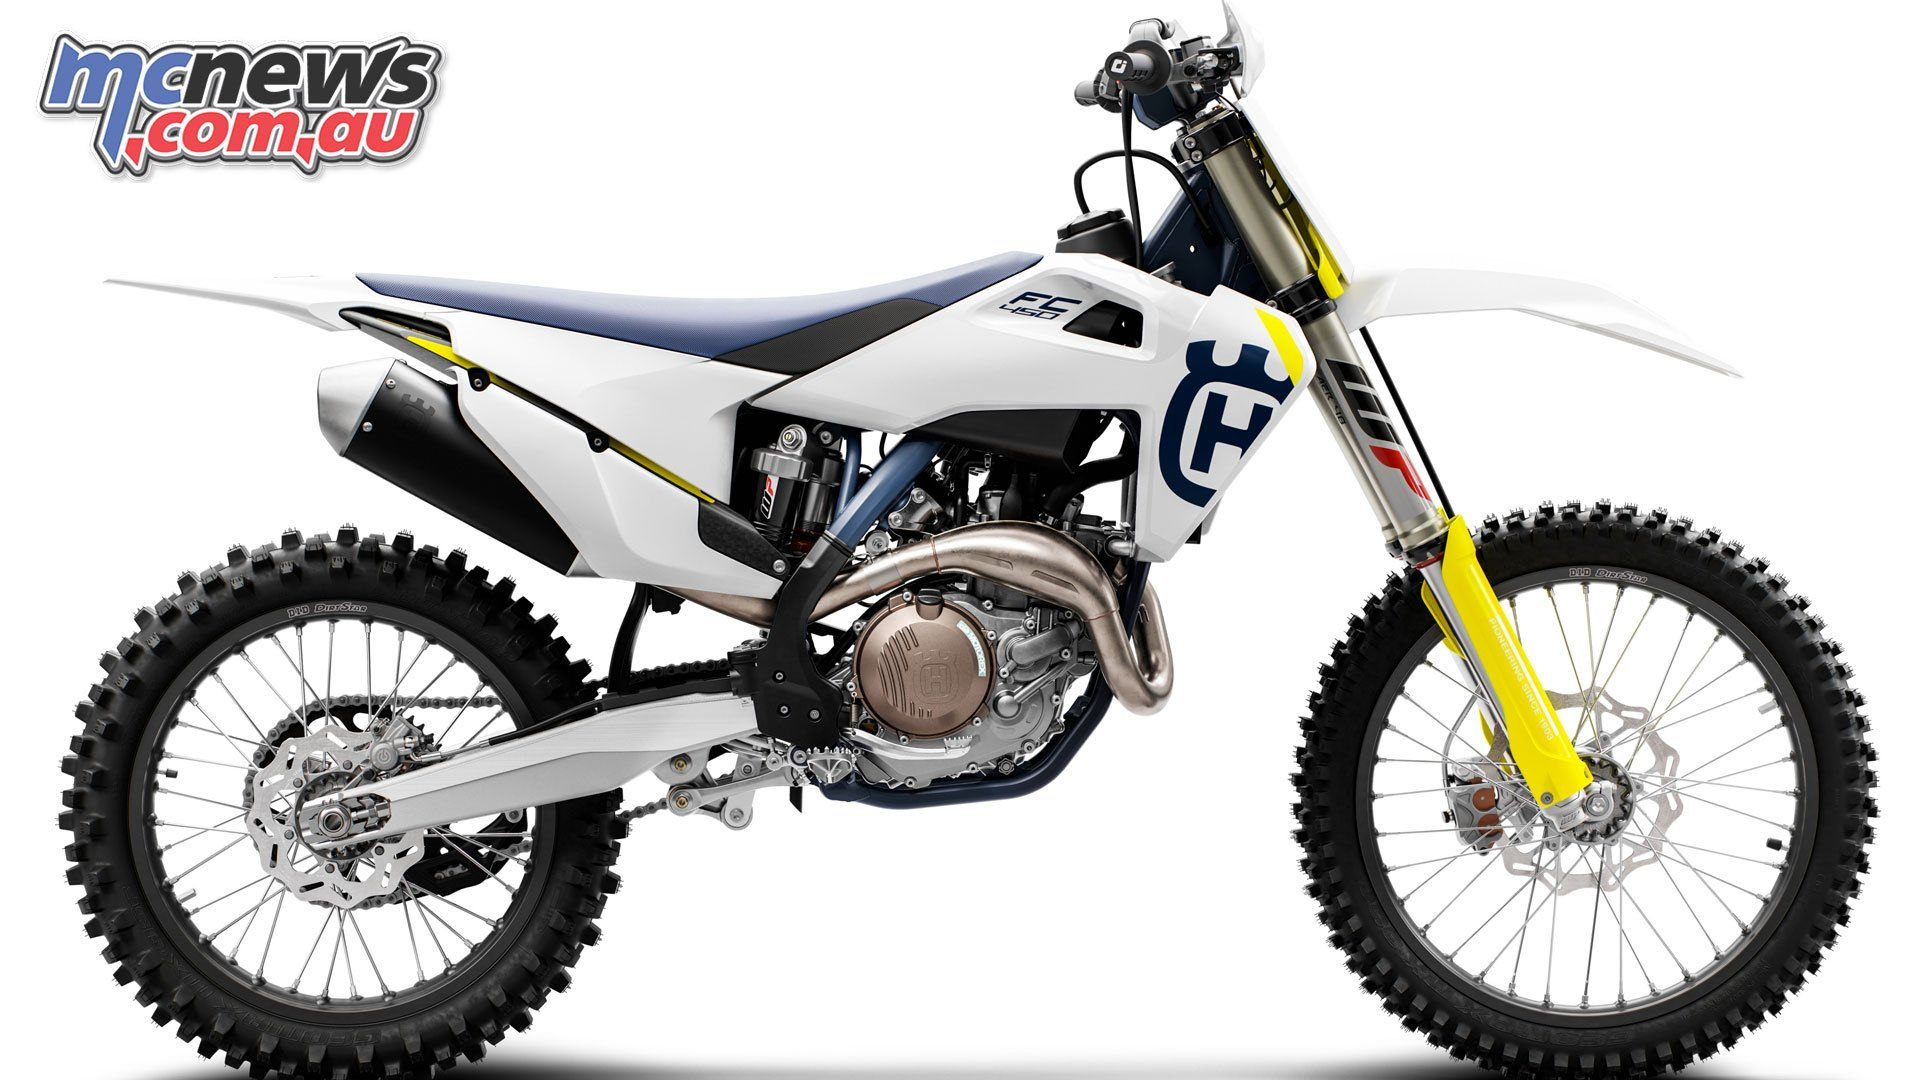 Husqvarna Motorcycles 2019 Research New From 2019 Husqvarna Motocross Range First Details Mcnews Au Inside Husqva Motorcycle New Motorcycles Motocross Action